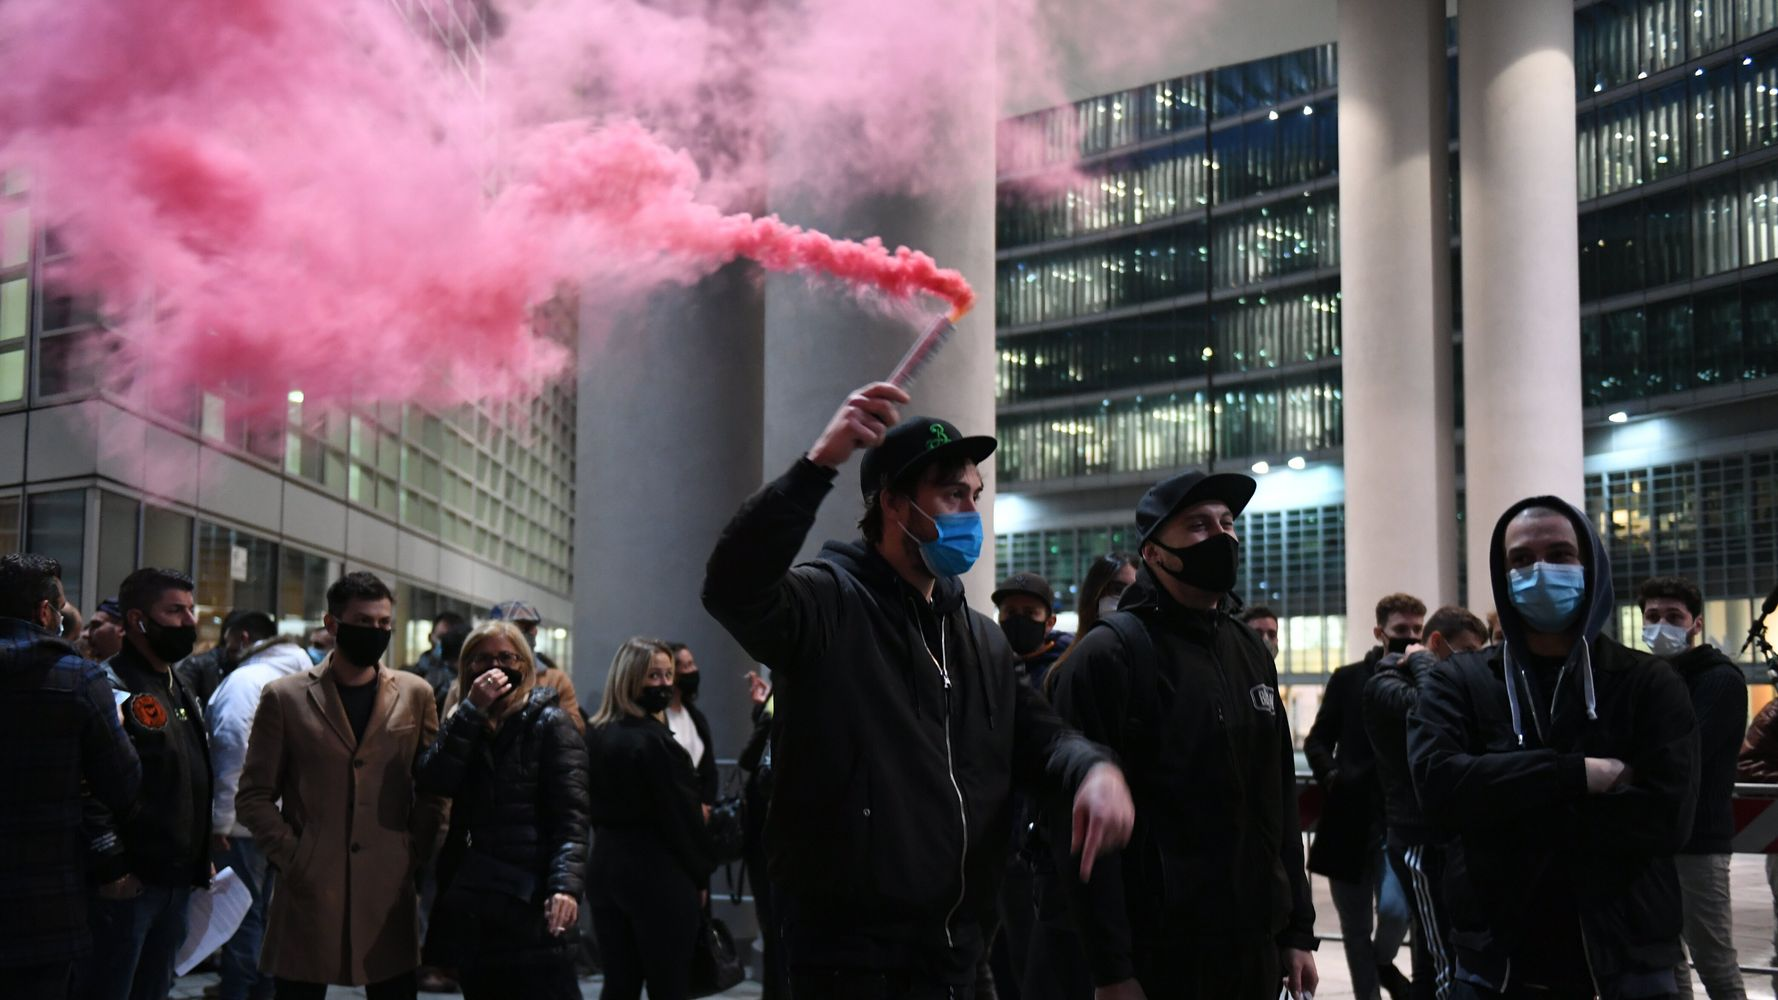 Violent Protests Flare In Italian Cities Against New COVID-19 Restrictions